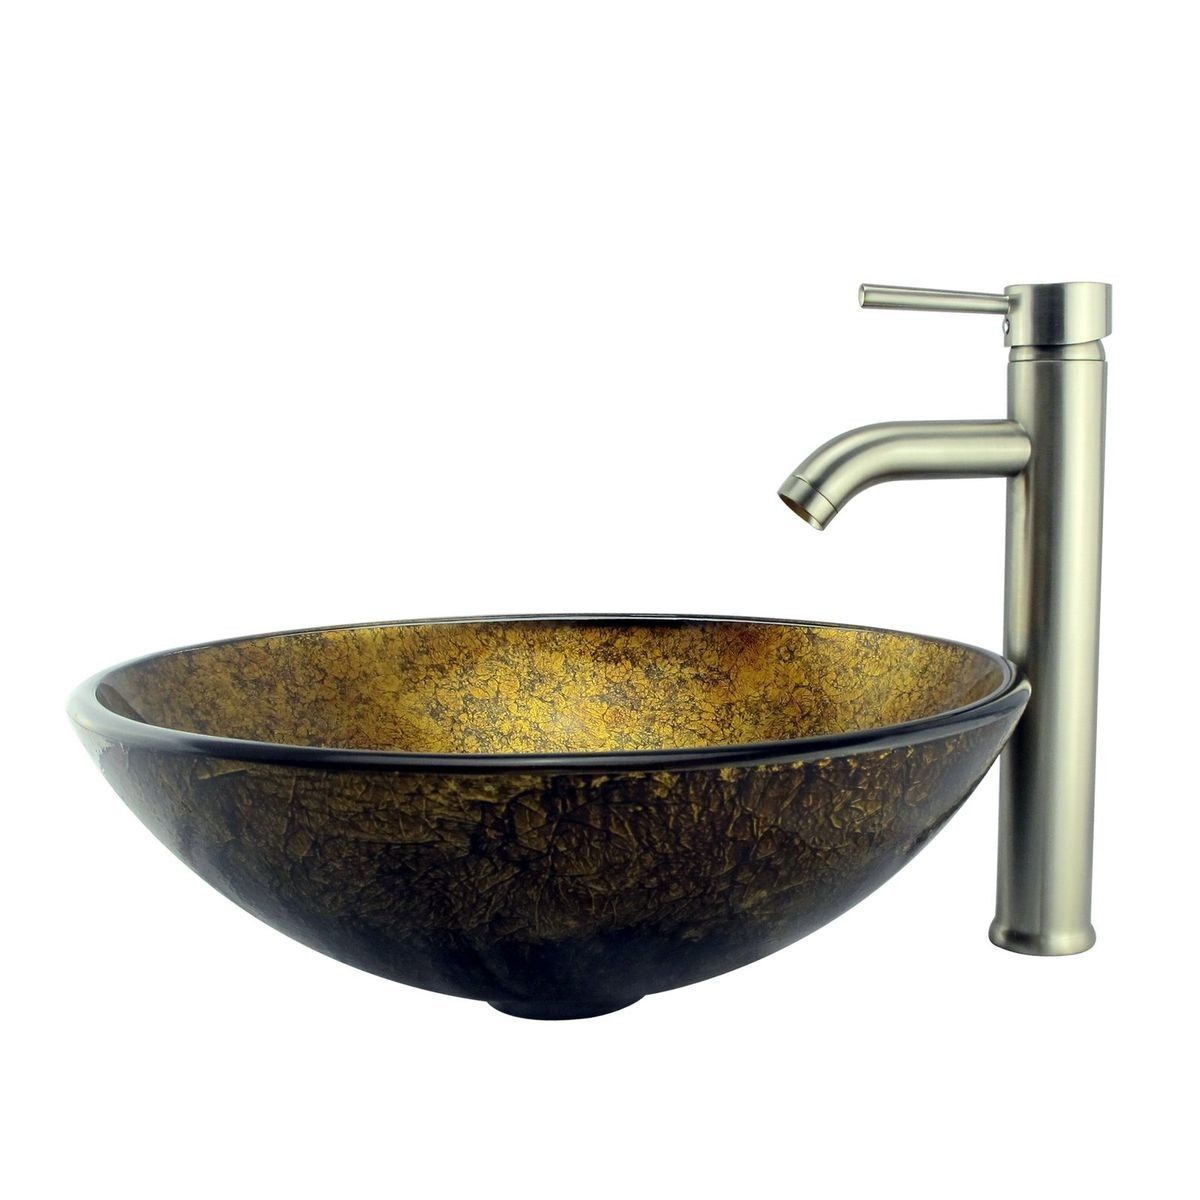 Foil Handcrafted Glass Bowl Vessel Bathroom Sink Products